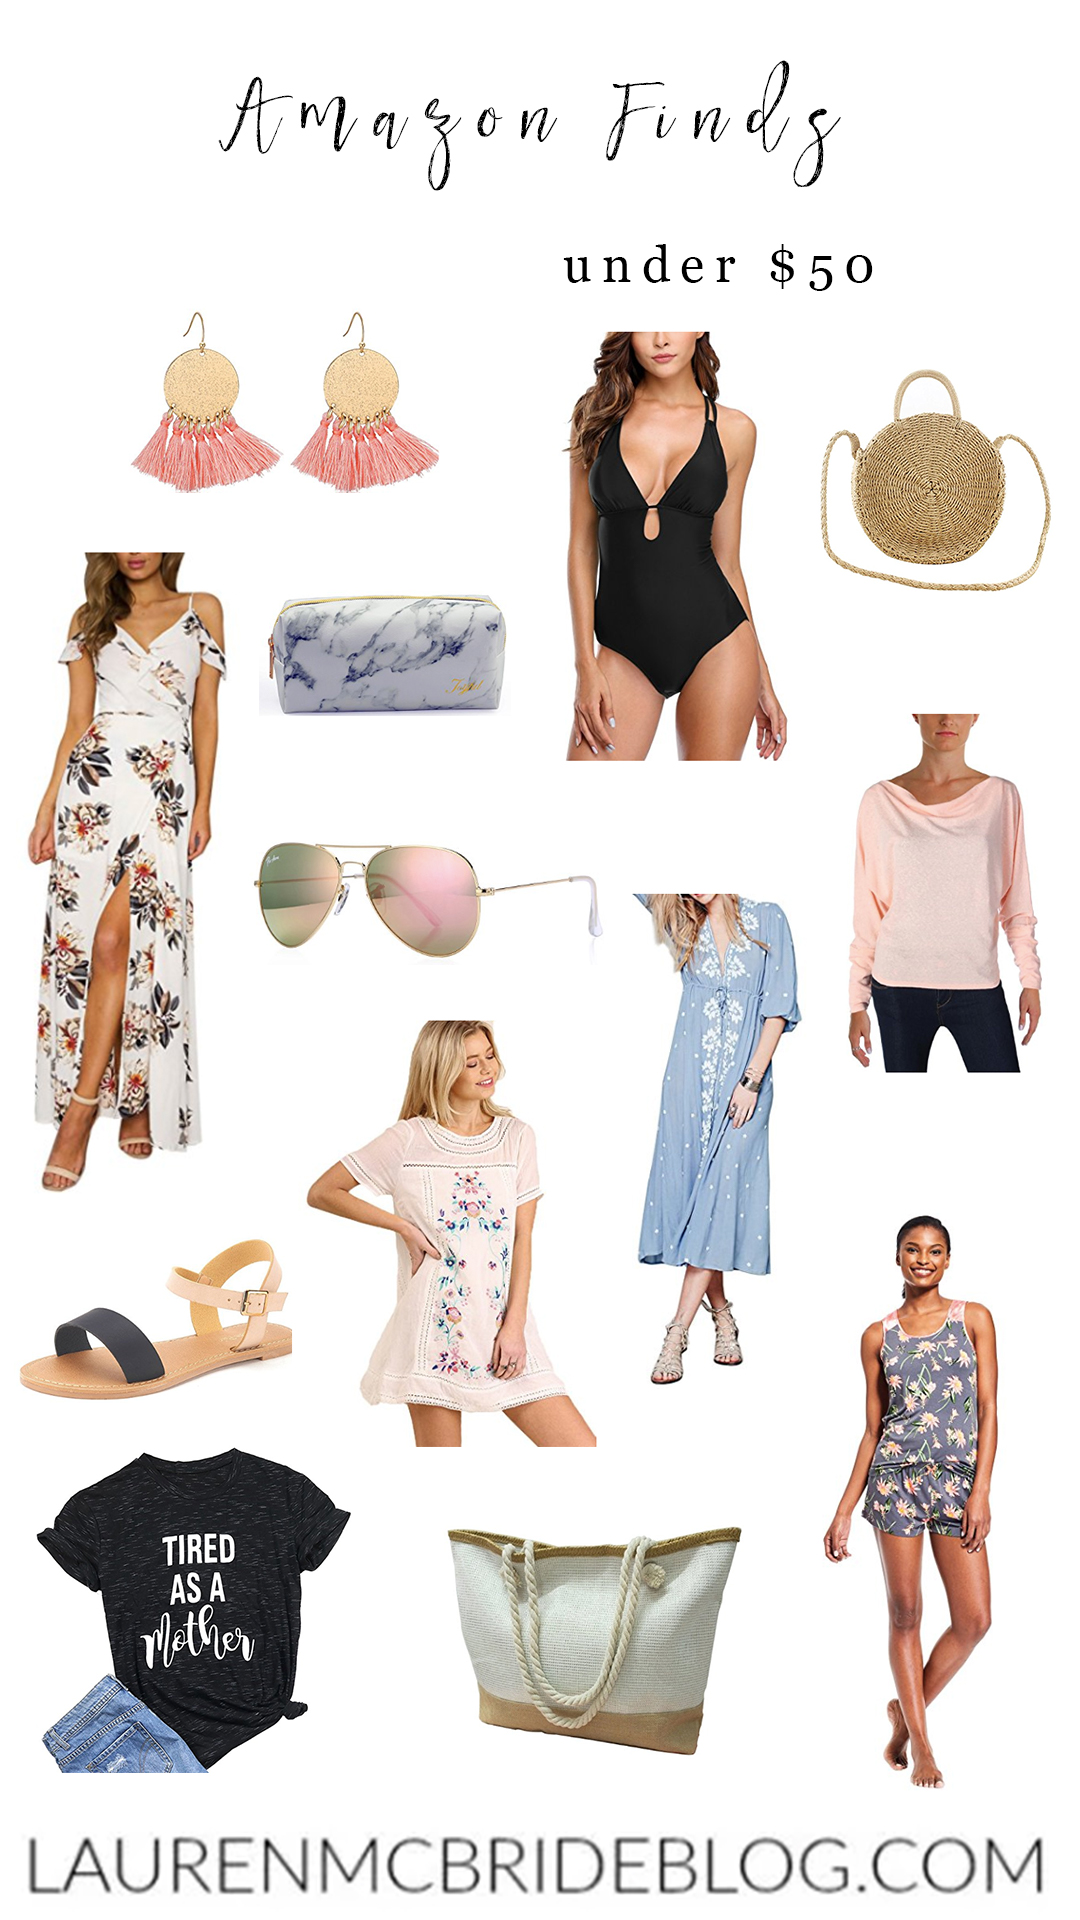 Life and style blogger Lauren McBride shares Amazon Finds under $50, including swimwear, accessories, shoes, bags, and more.